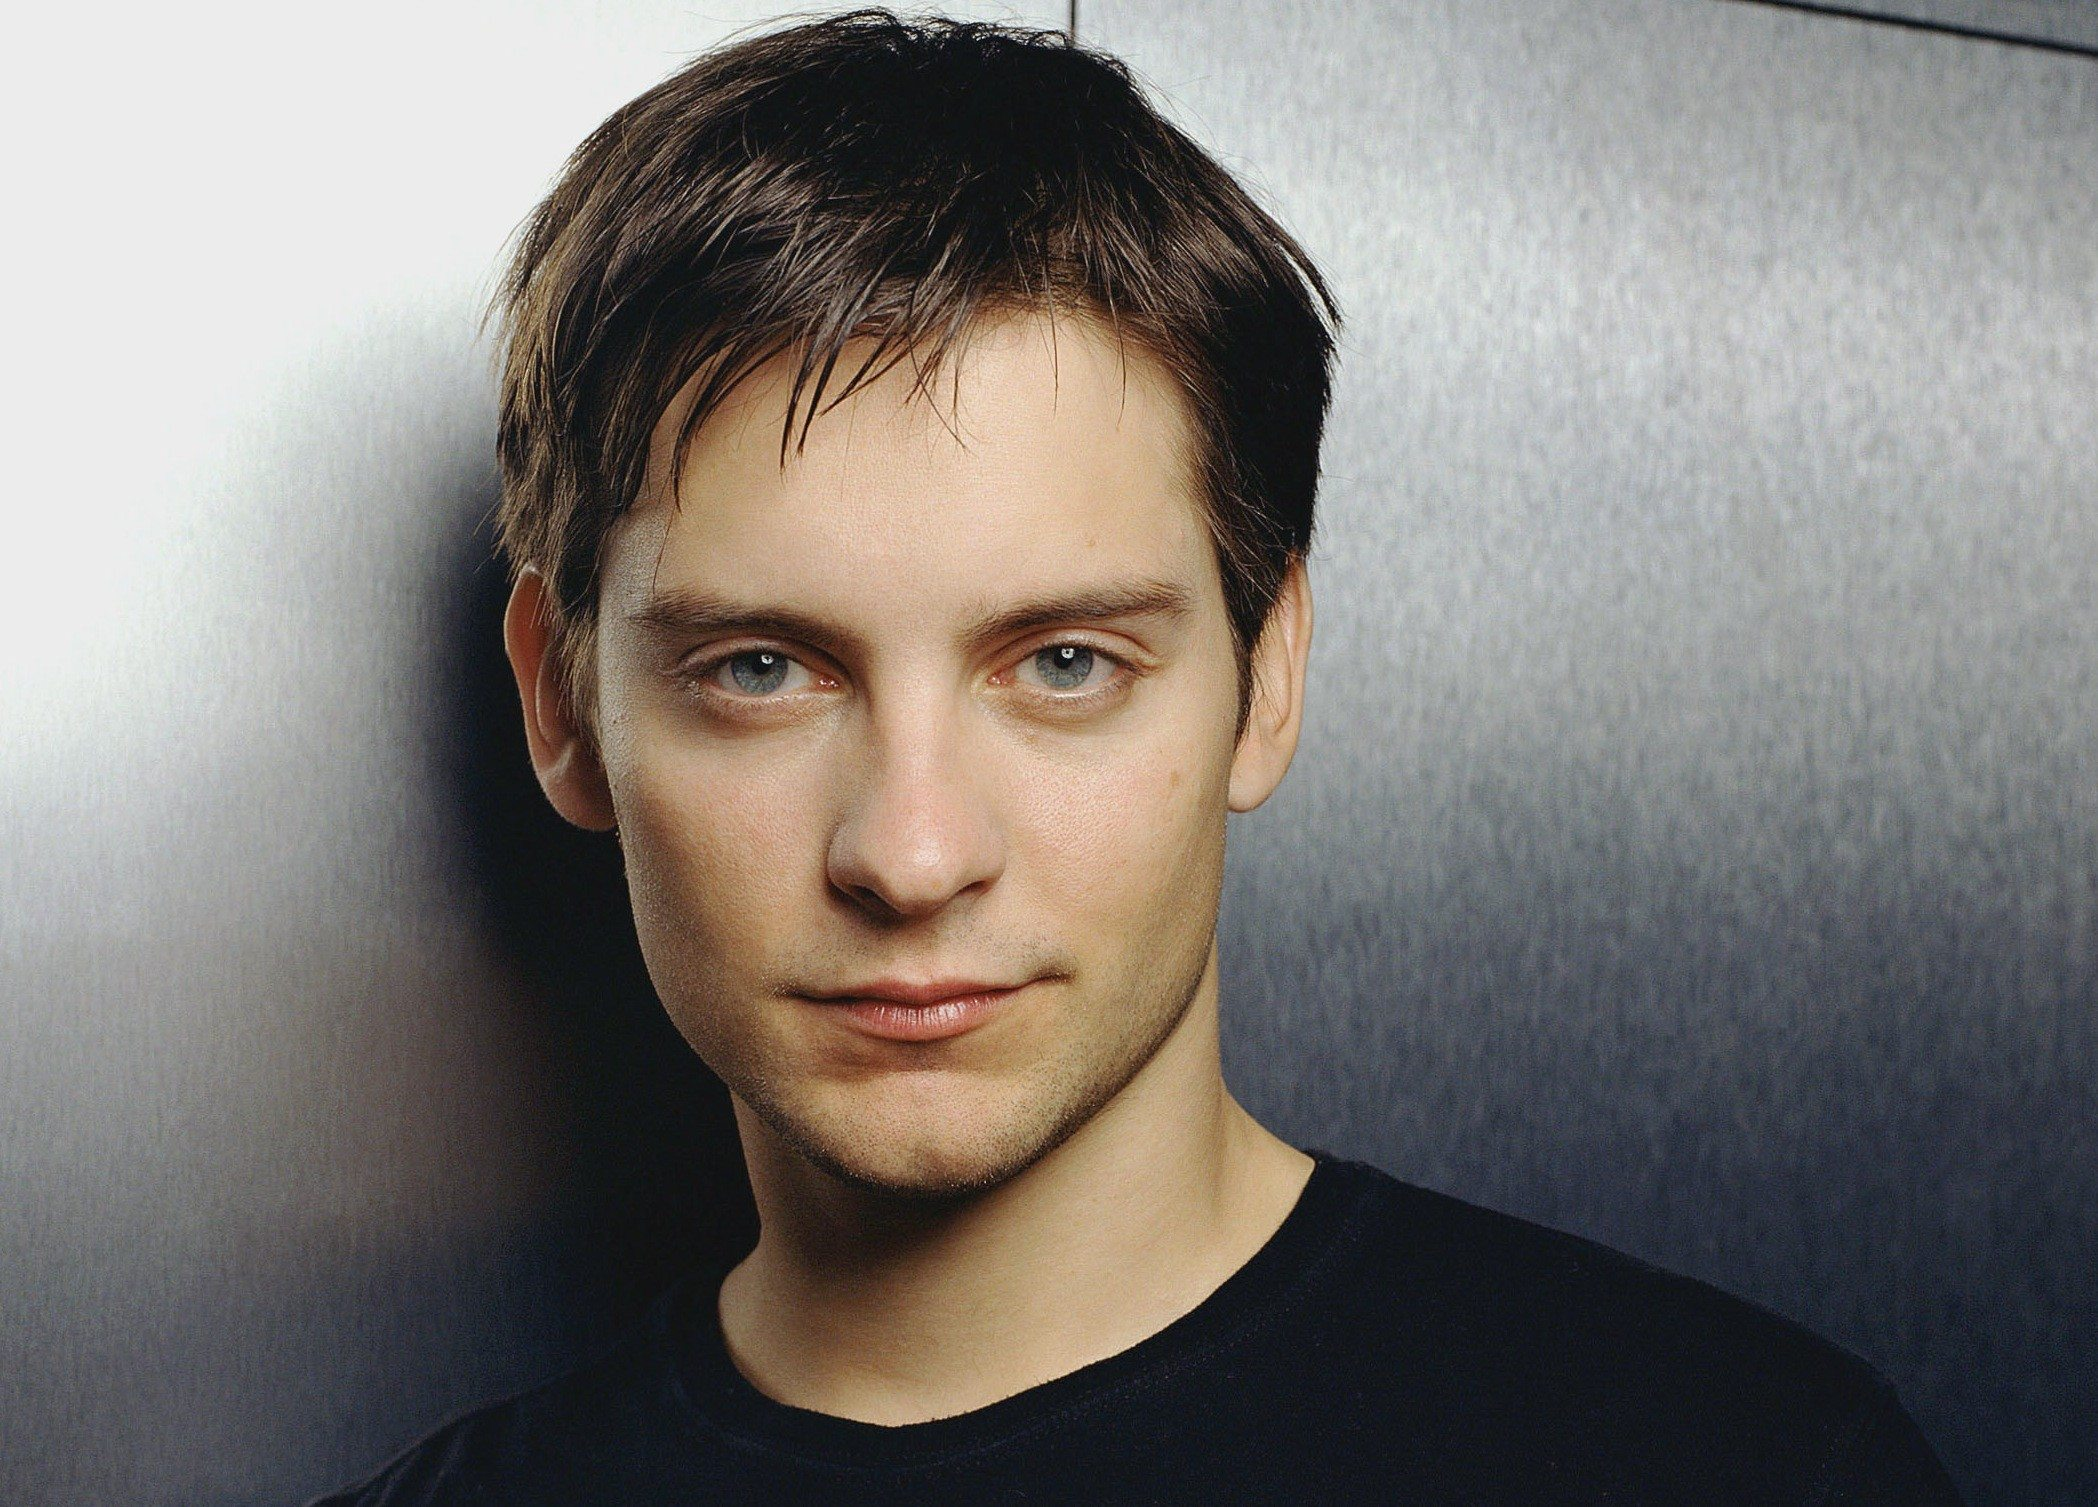 TOBEY MAGUIRE Film 'SPIDER-MAN